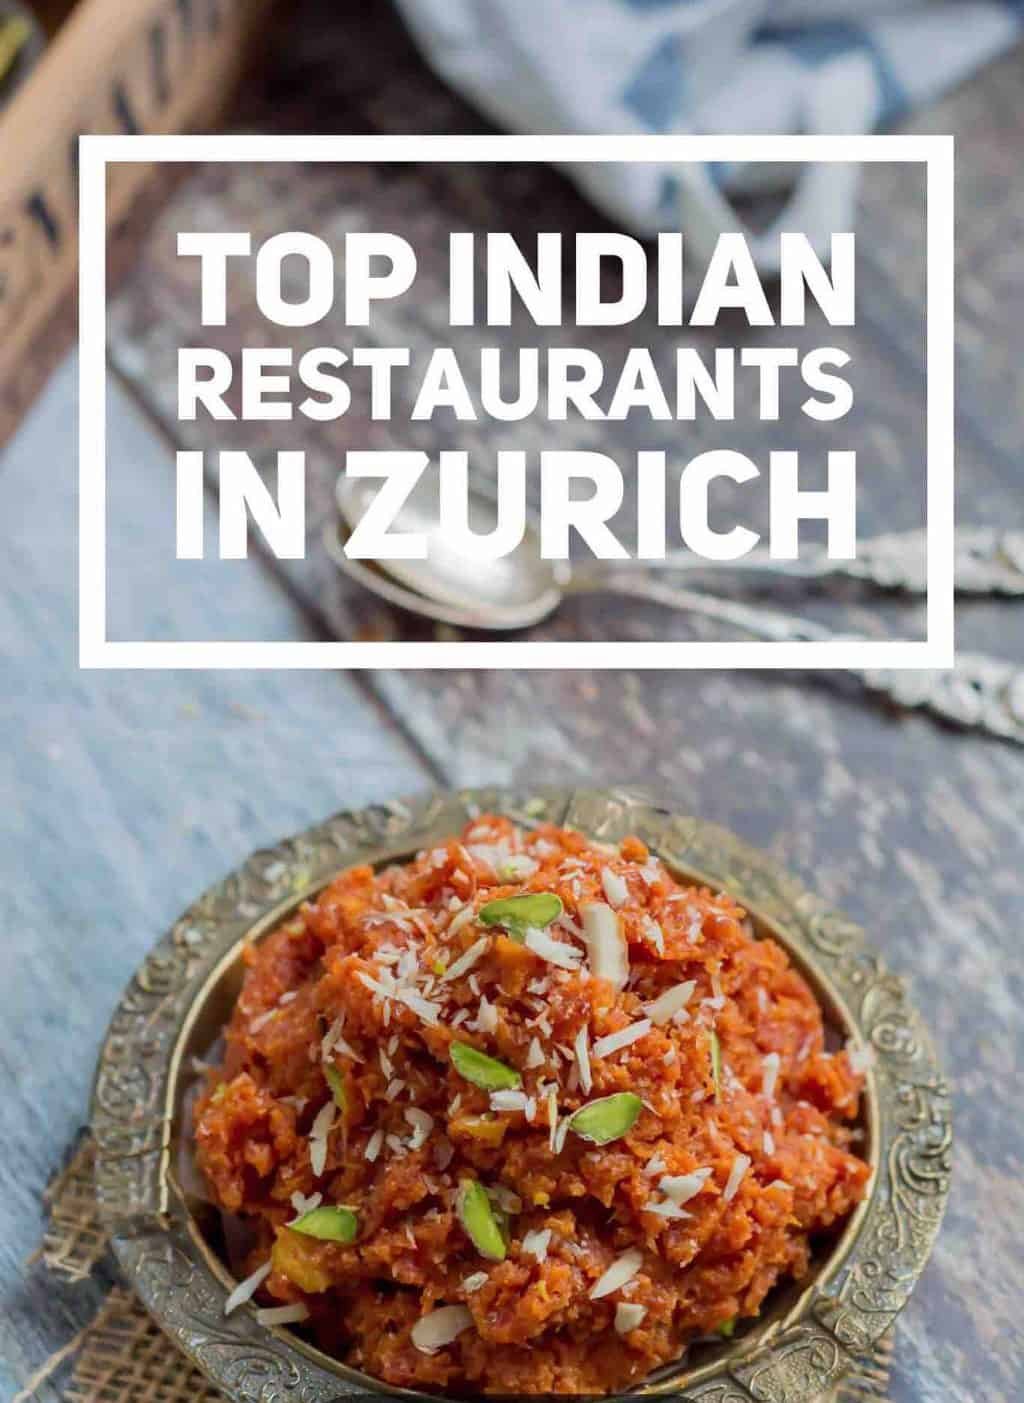 Top Indian Restaurants in Zurich